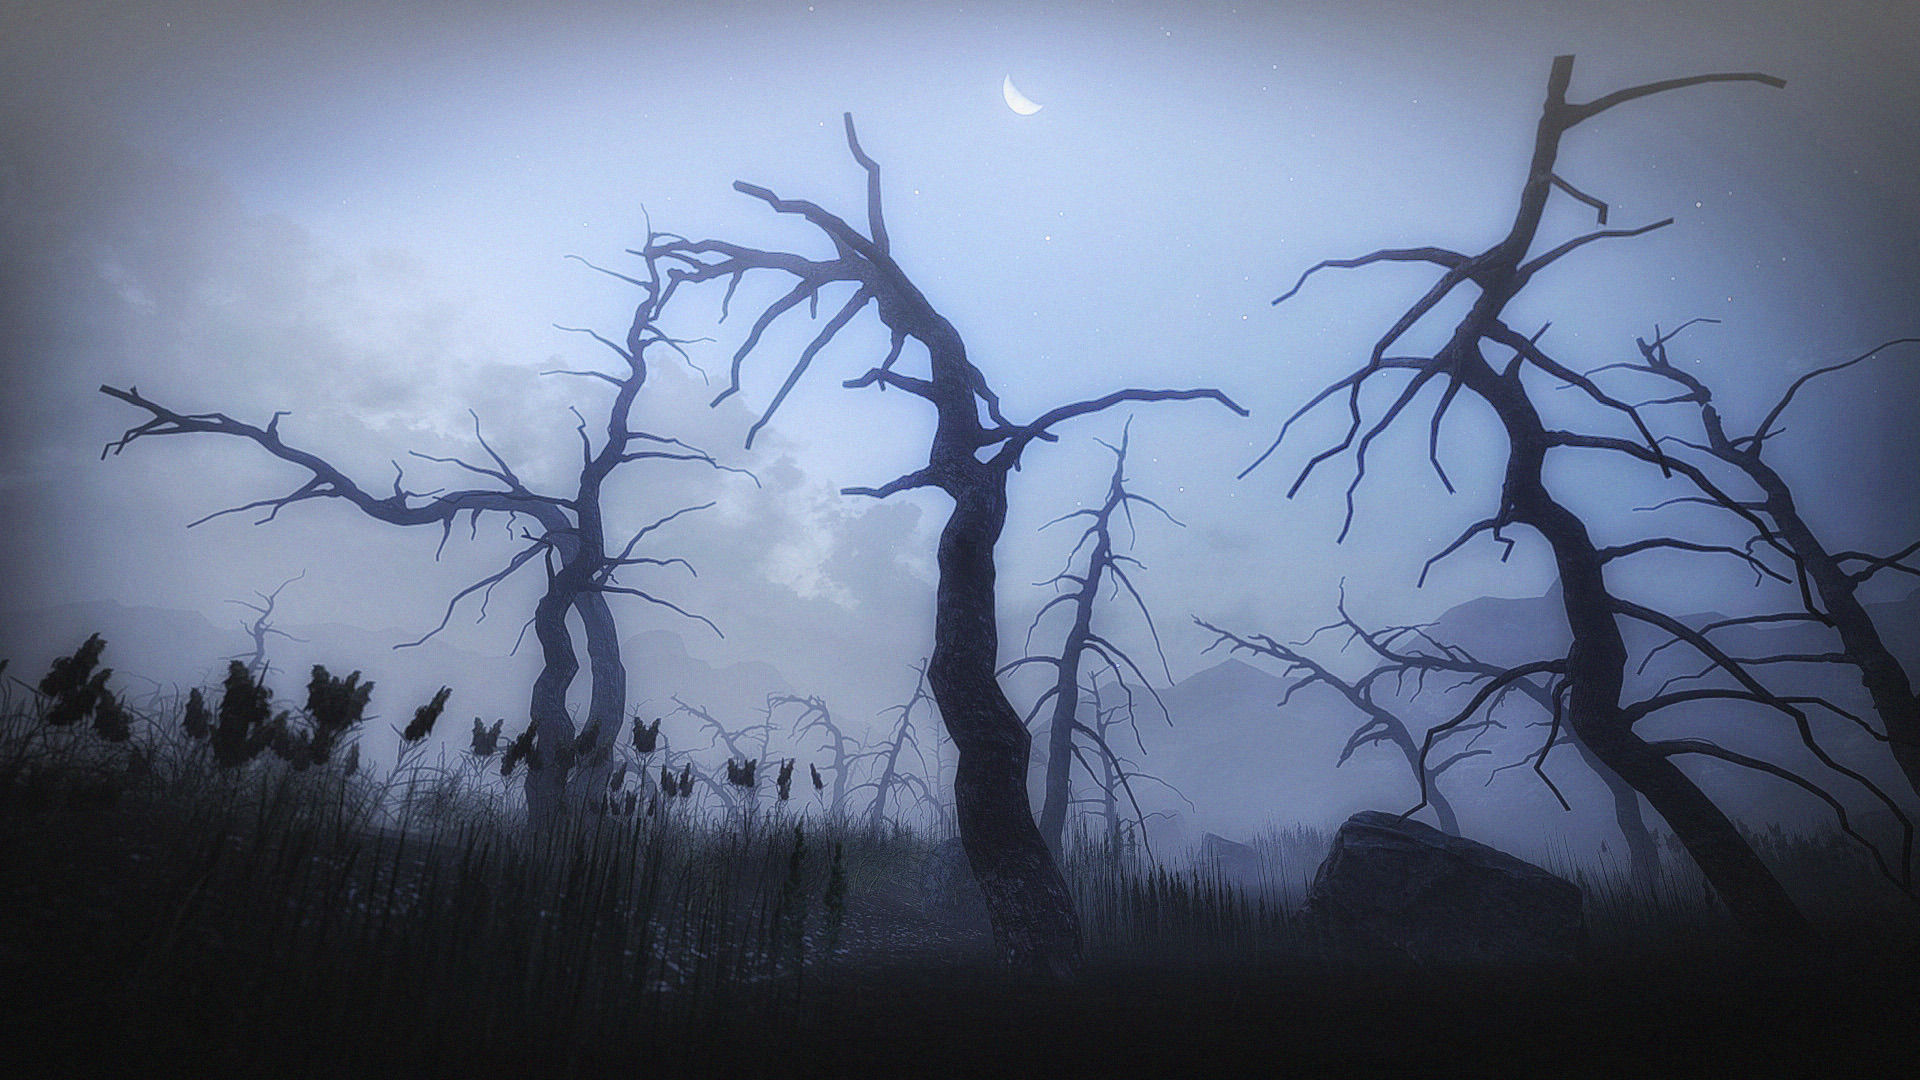 3d model 10 old spooky tree models for aaa and mobile games vr ar